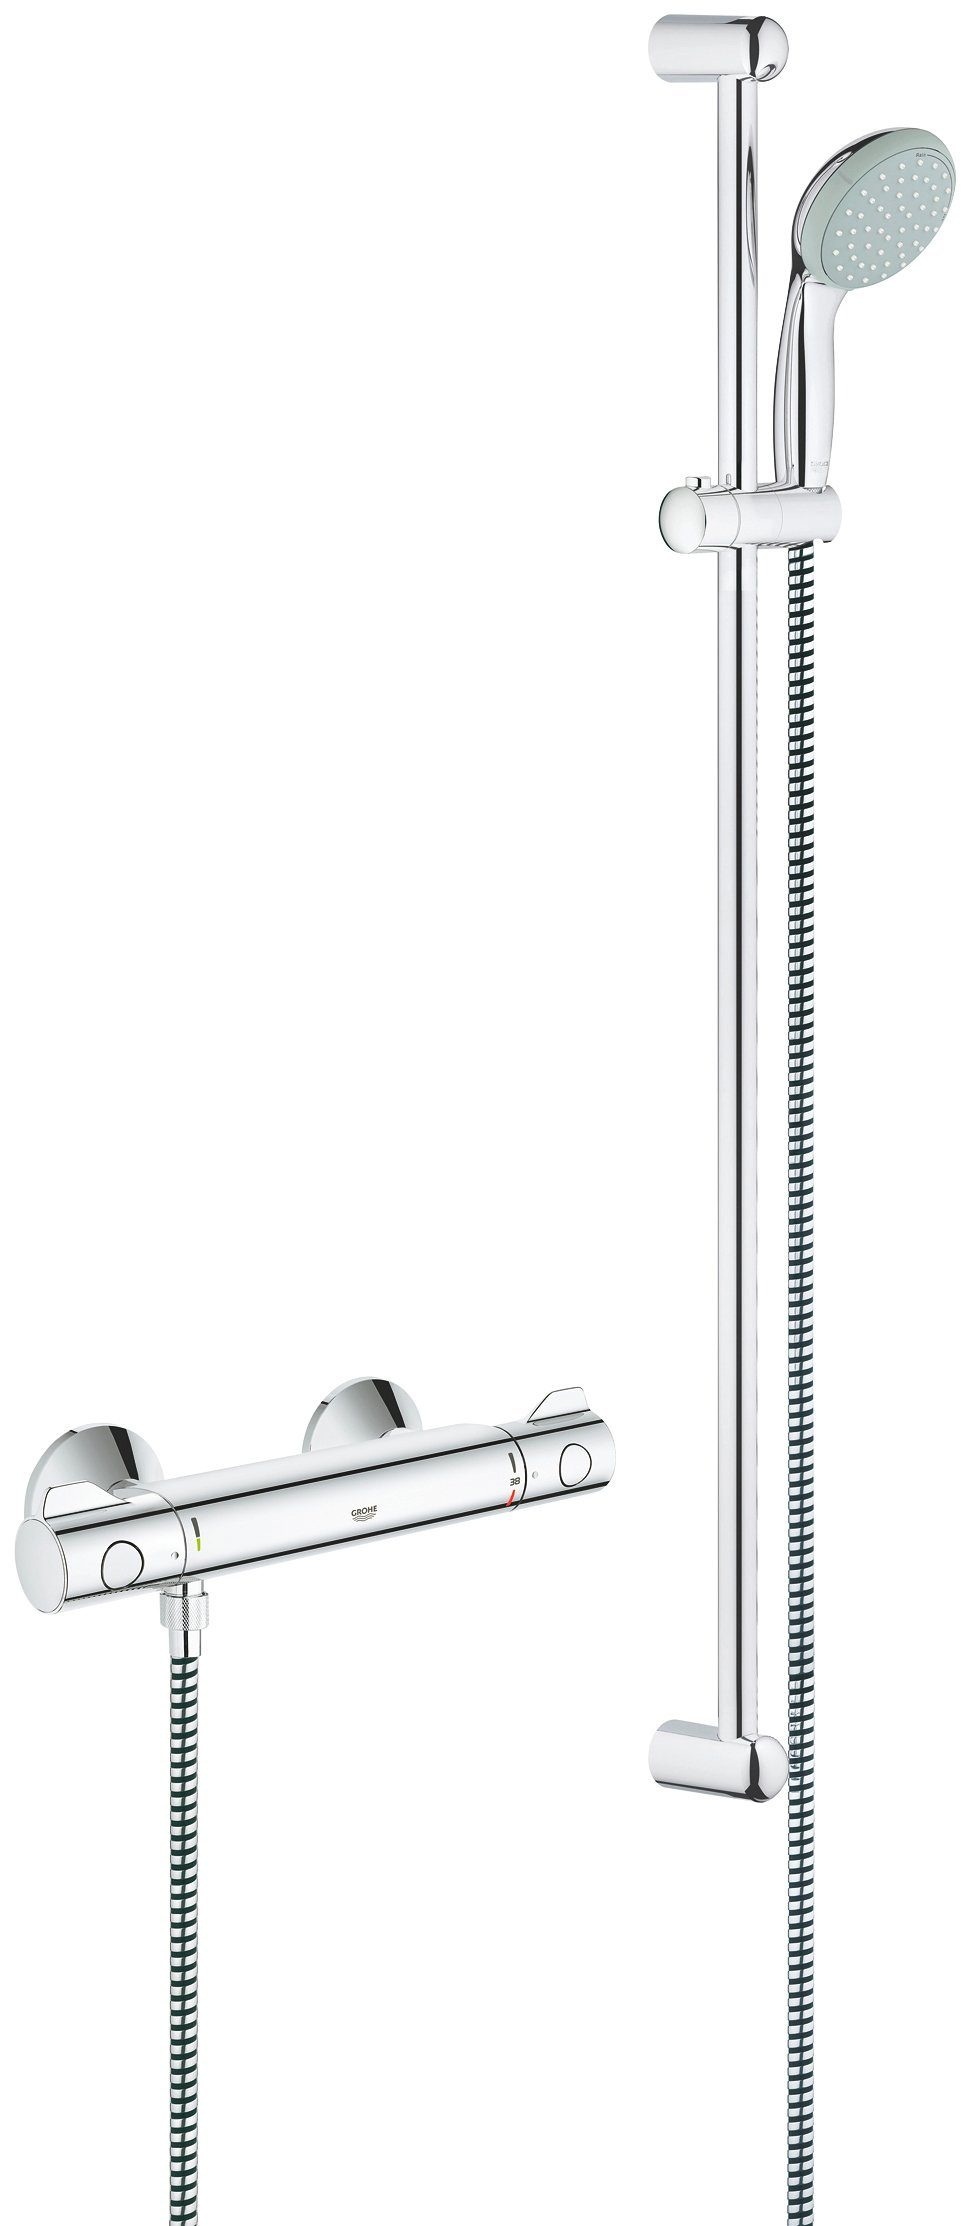 GROHE Brausegarnitur »Grotherm 800«, Inklusive Duschthermostat